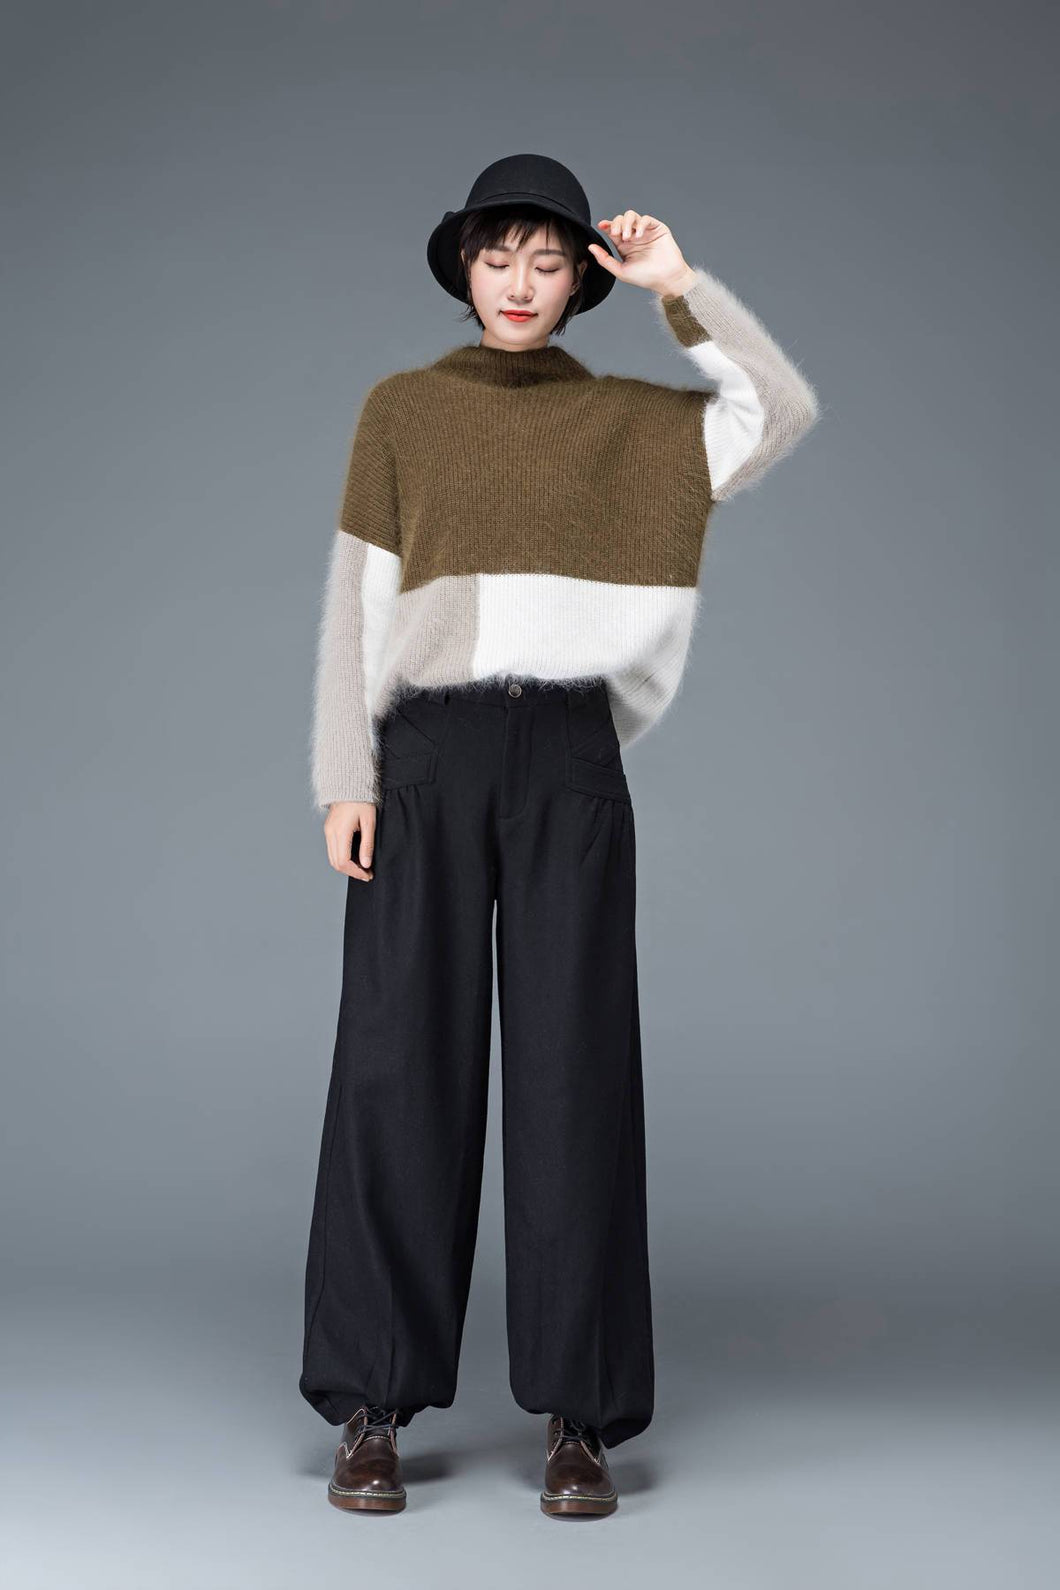 Black pants, womens pants, wool pants, black long pants, wide leg pants, casual pants, winter pants, maxi pants with pockets C1179